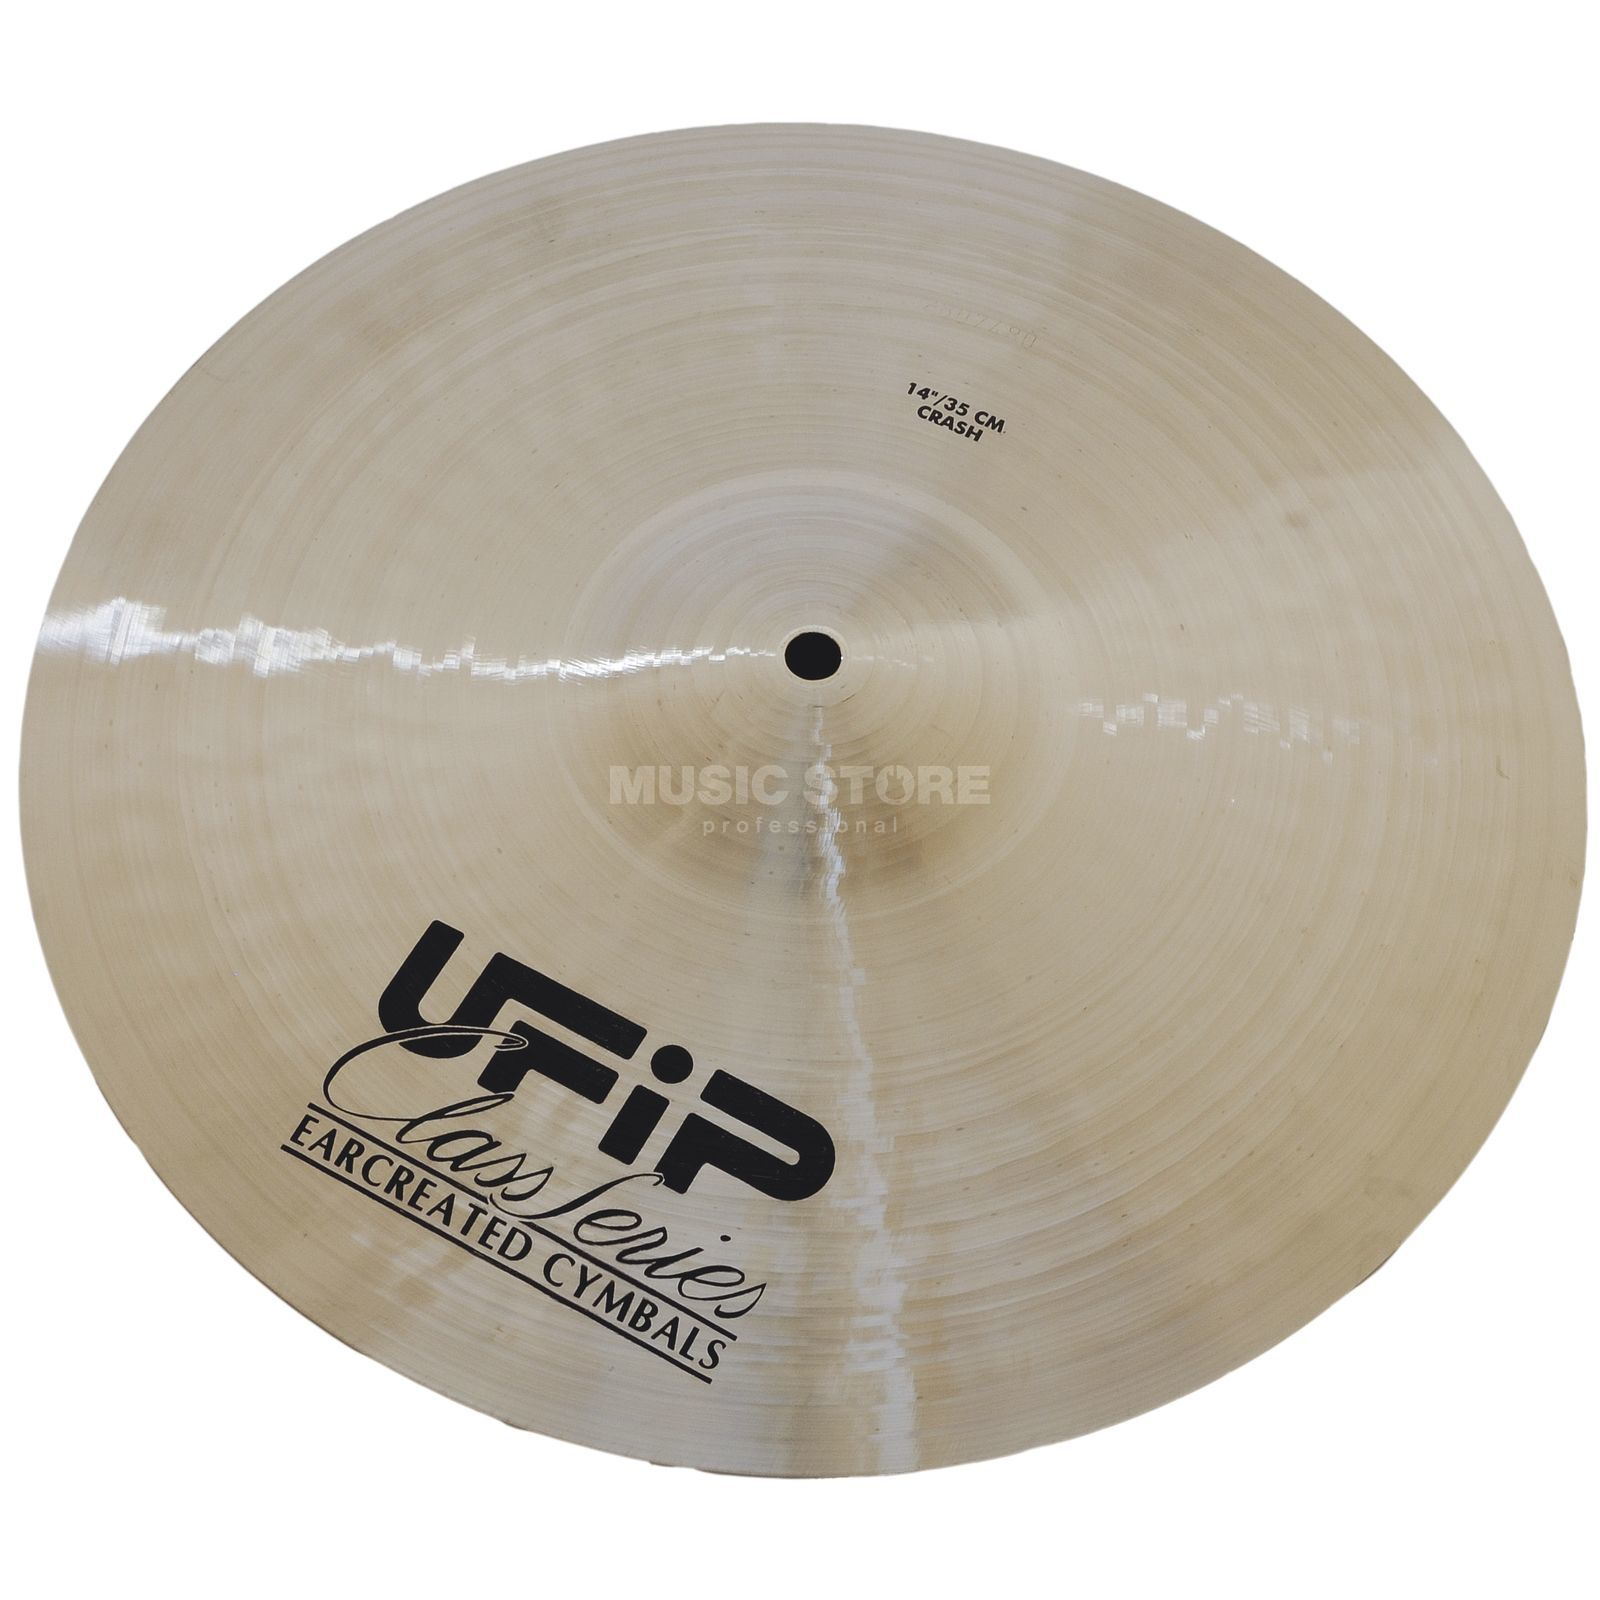 "Ufip Class Medium Crash 17"", Natural Finish Produktbillede"